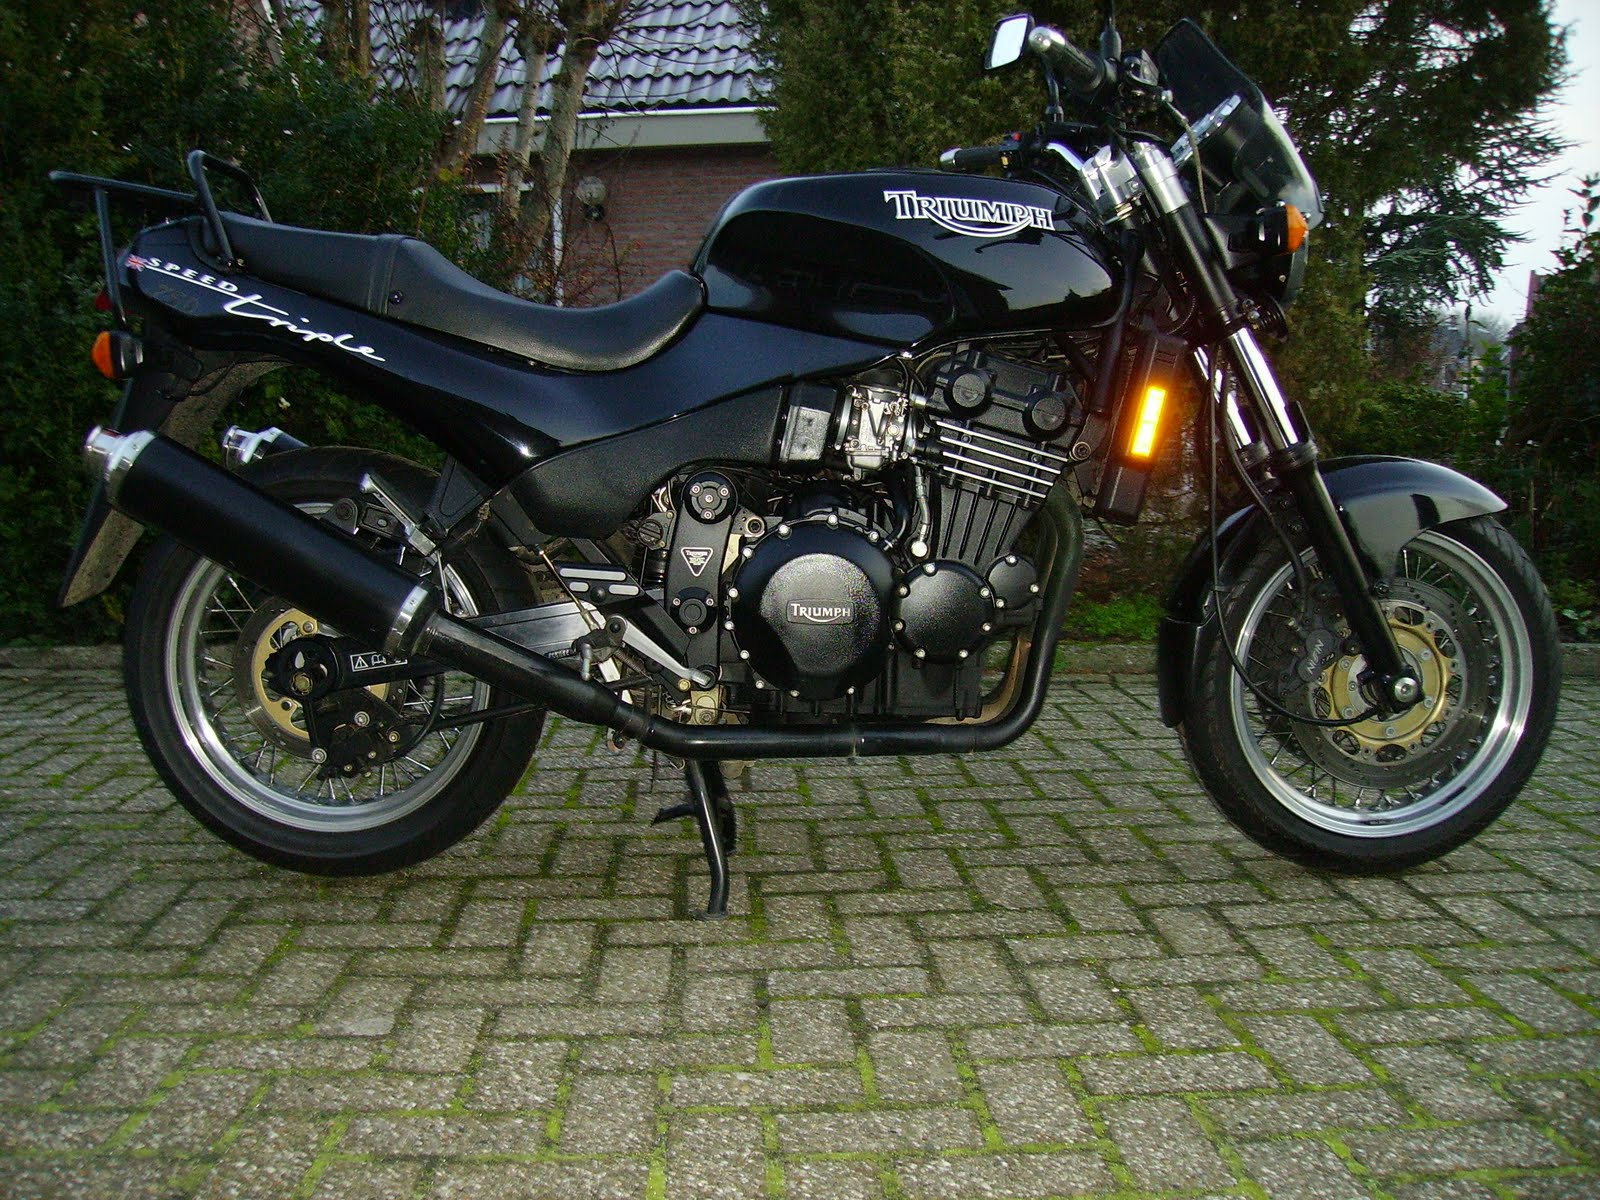 Triumph Speed Triple 900 1996 images #159237